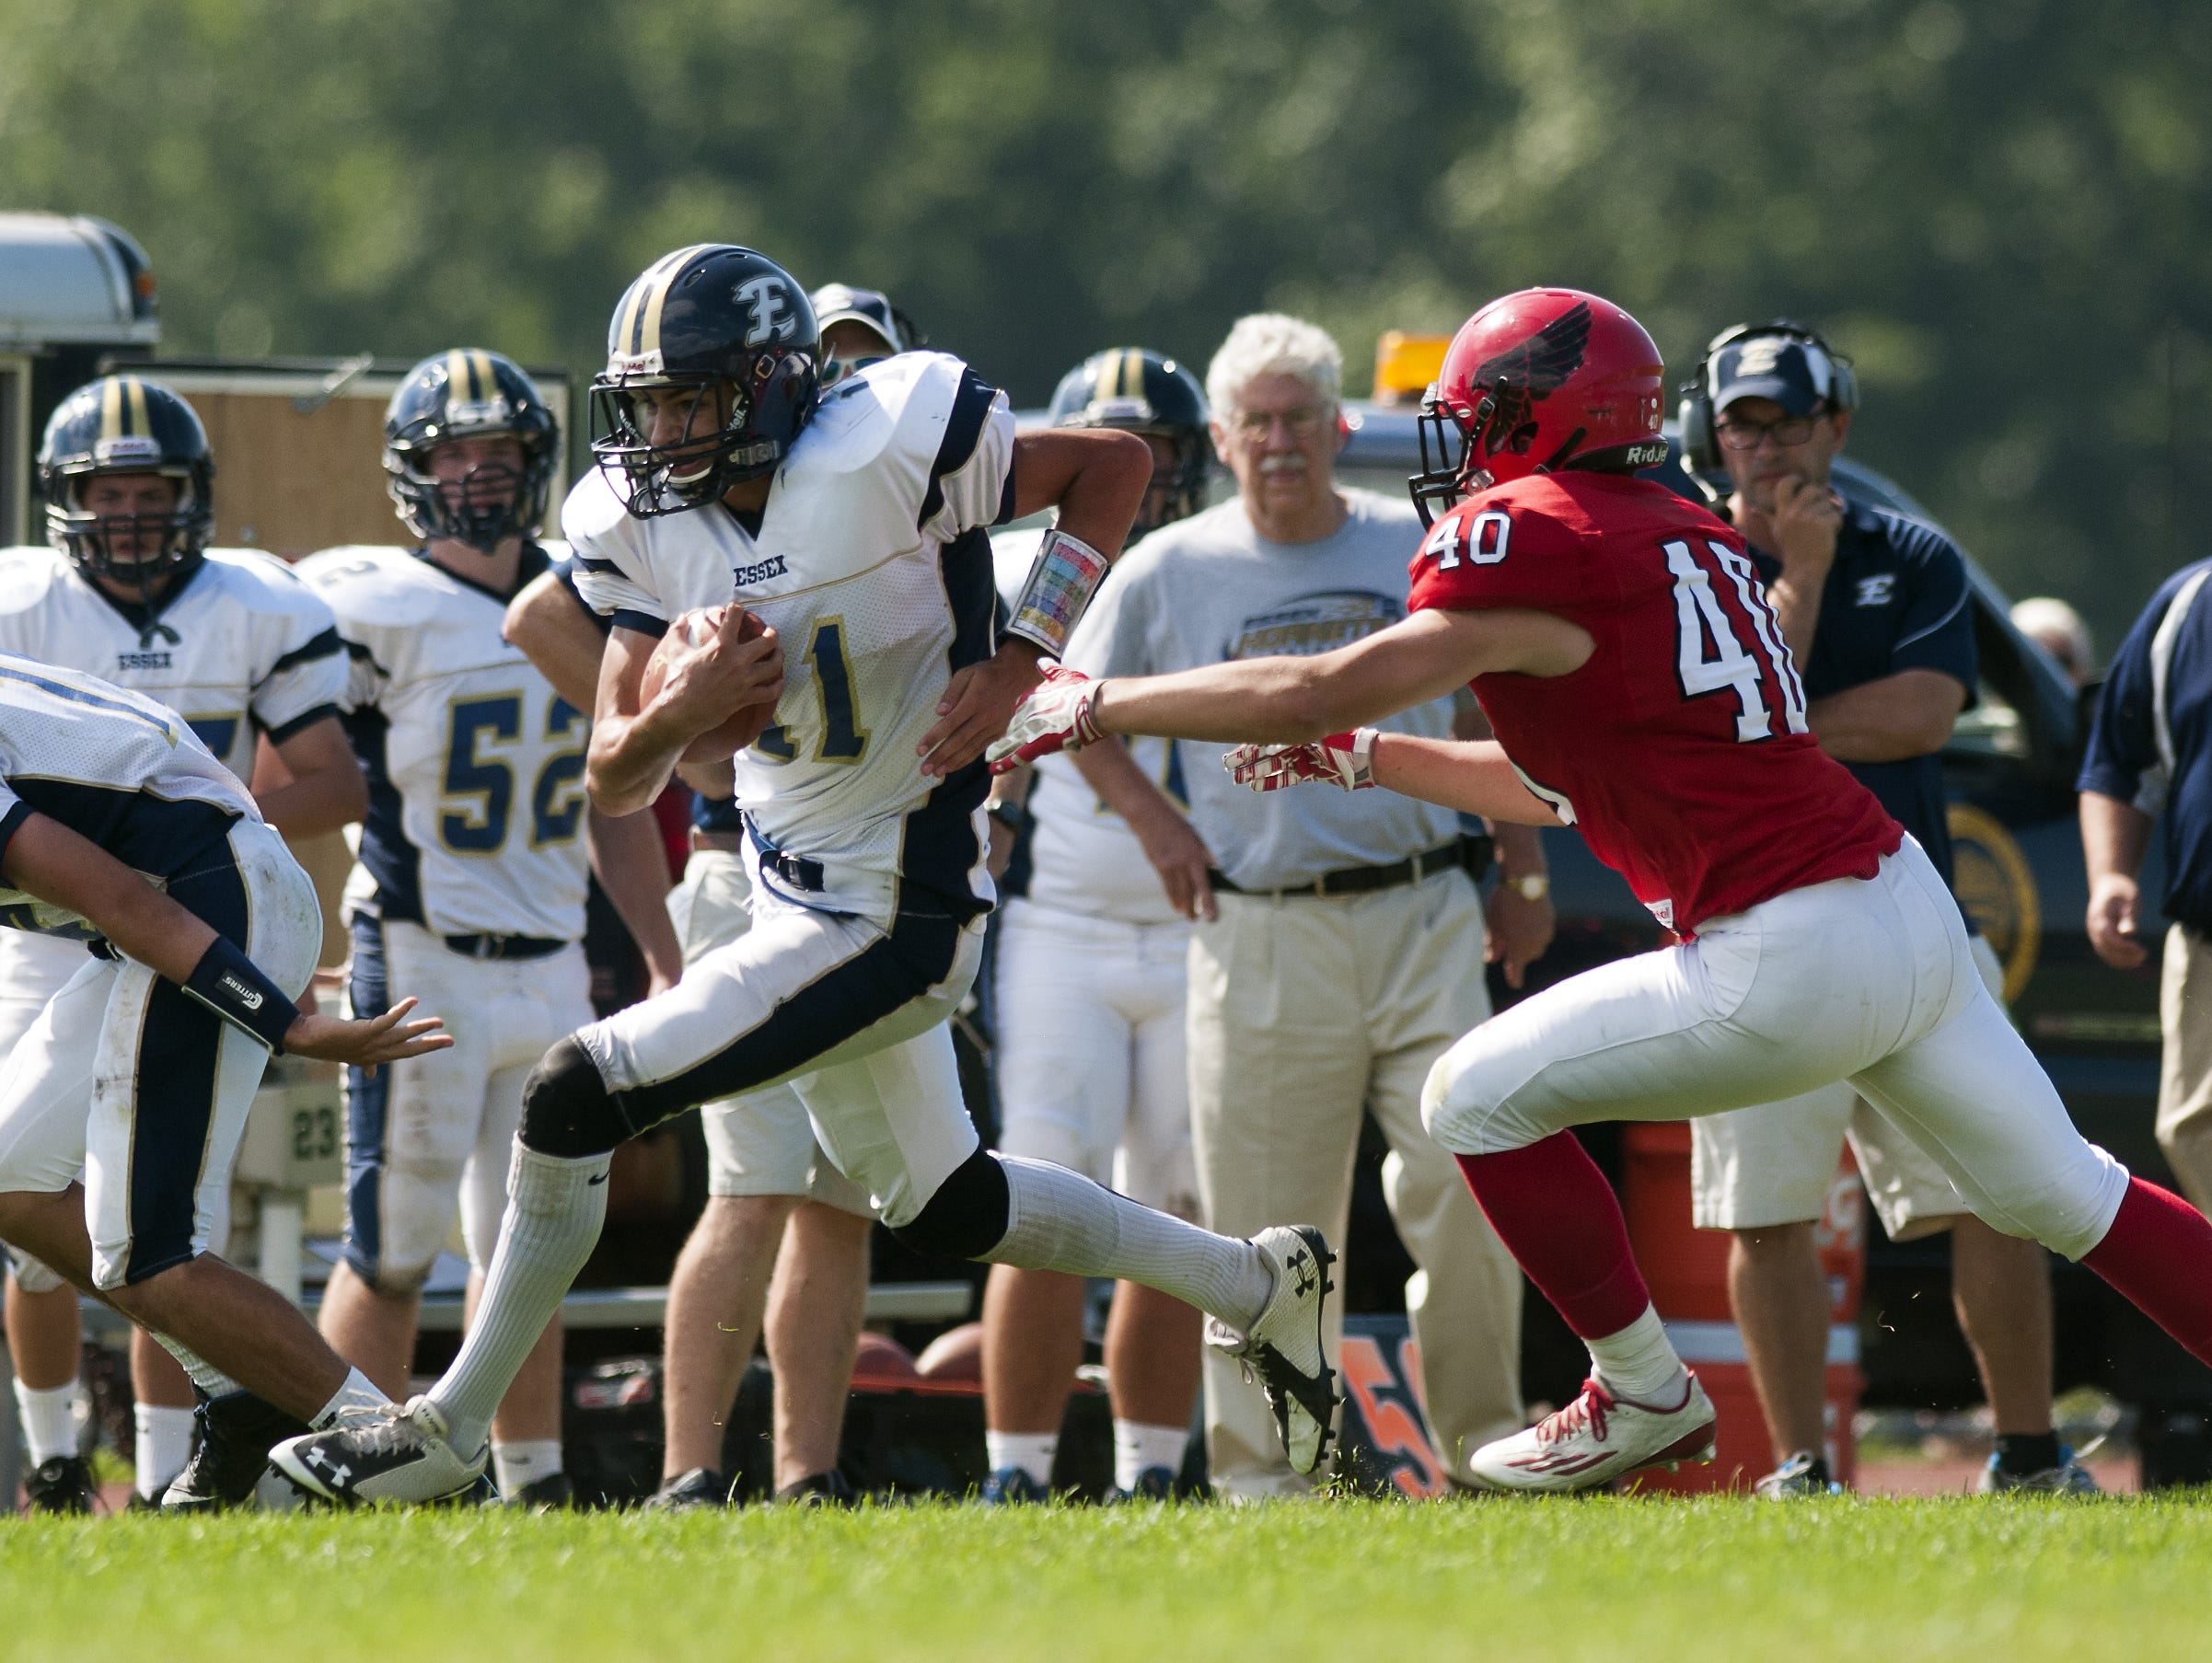 Essex quarterback Eli DiGRande (11) runs past CVU's Tristan Nagiba (40) with the ball during the high school football game between the Essex Hornets and the Champlain Valley Union Redhawks on Saturday afternoon.